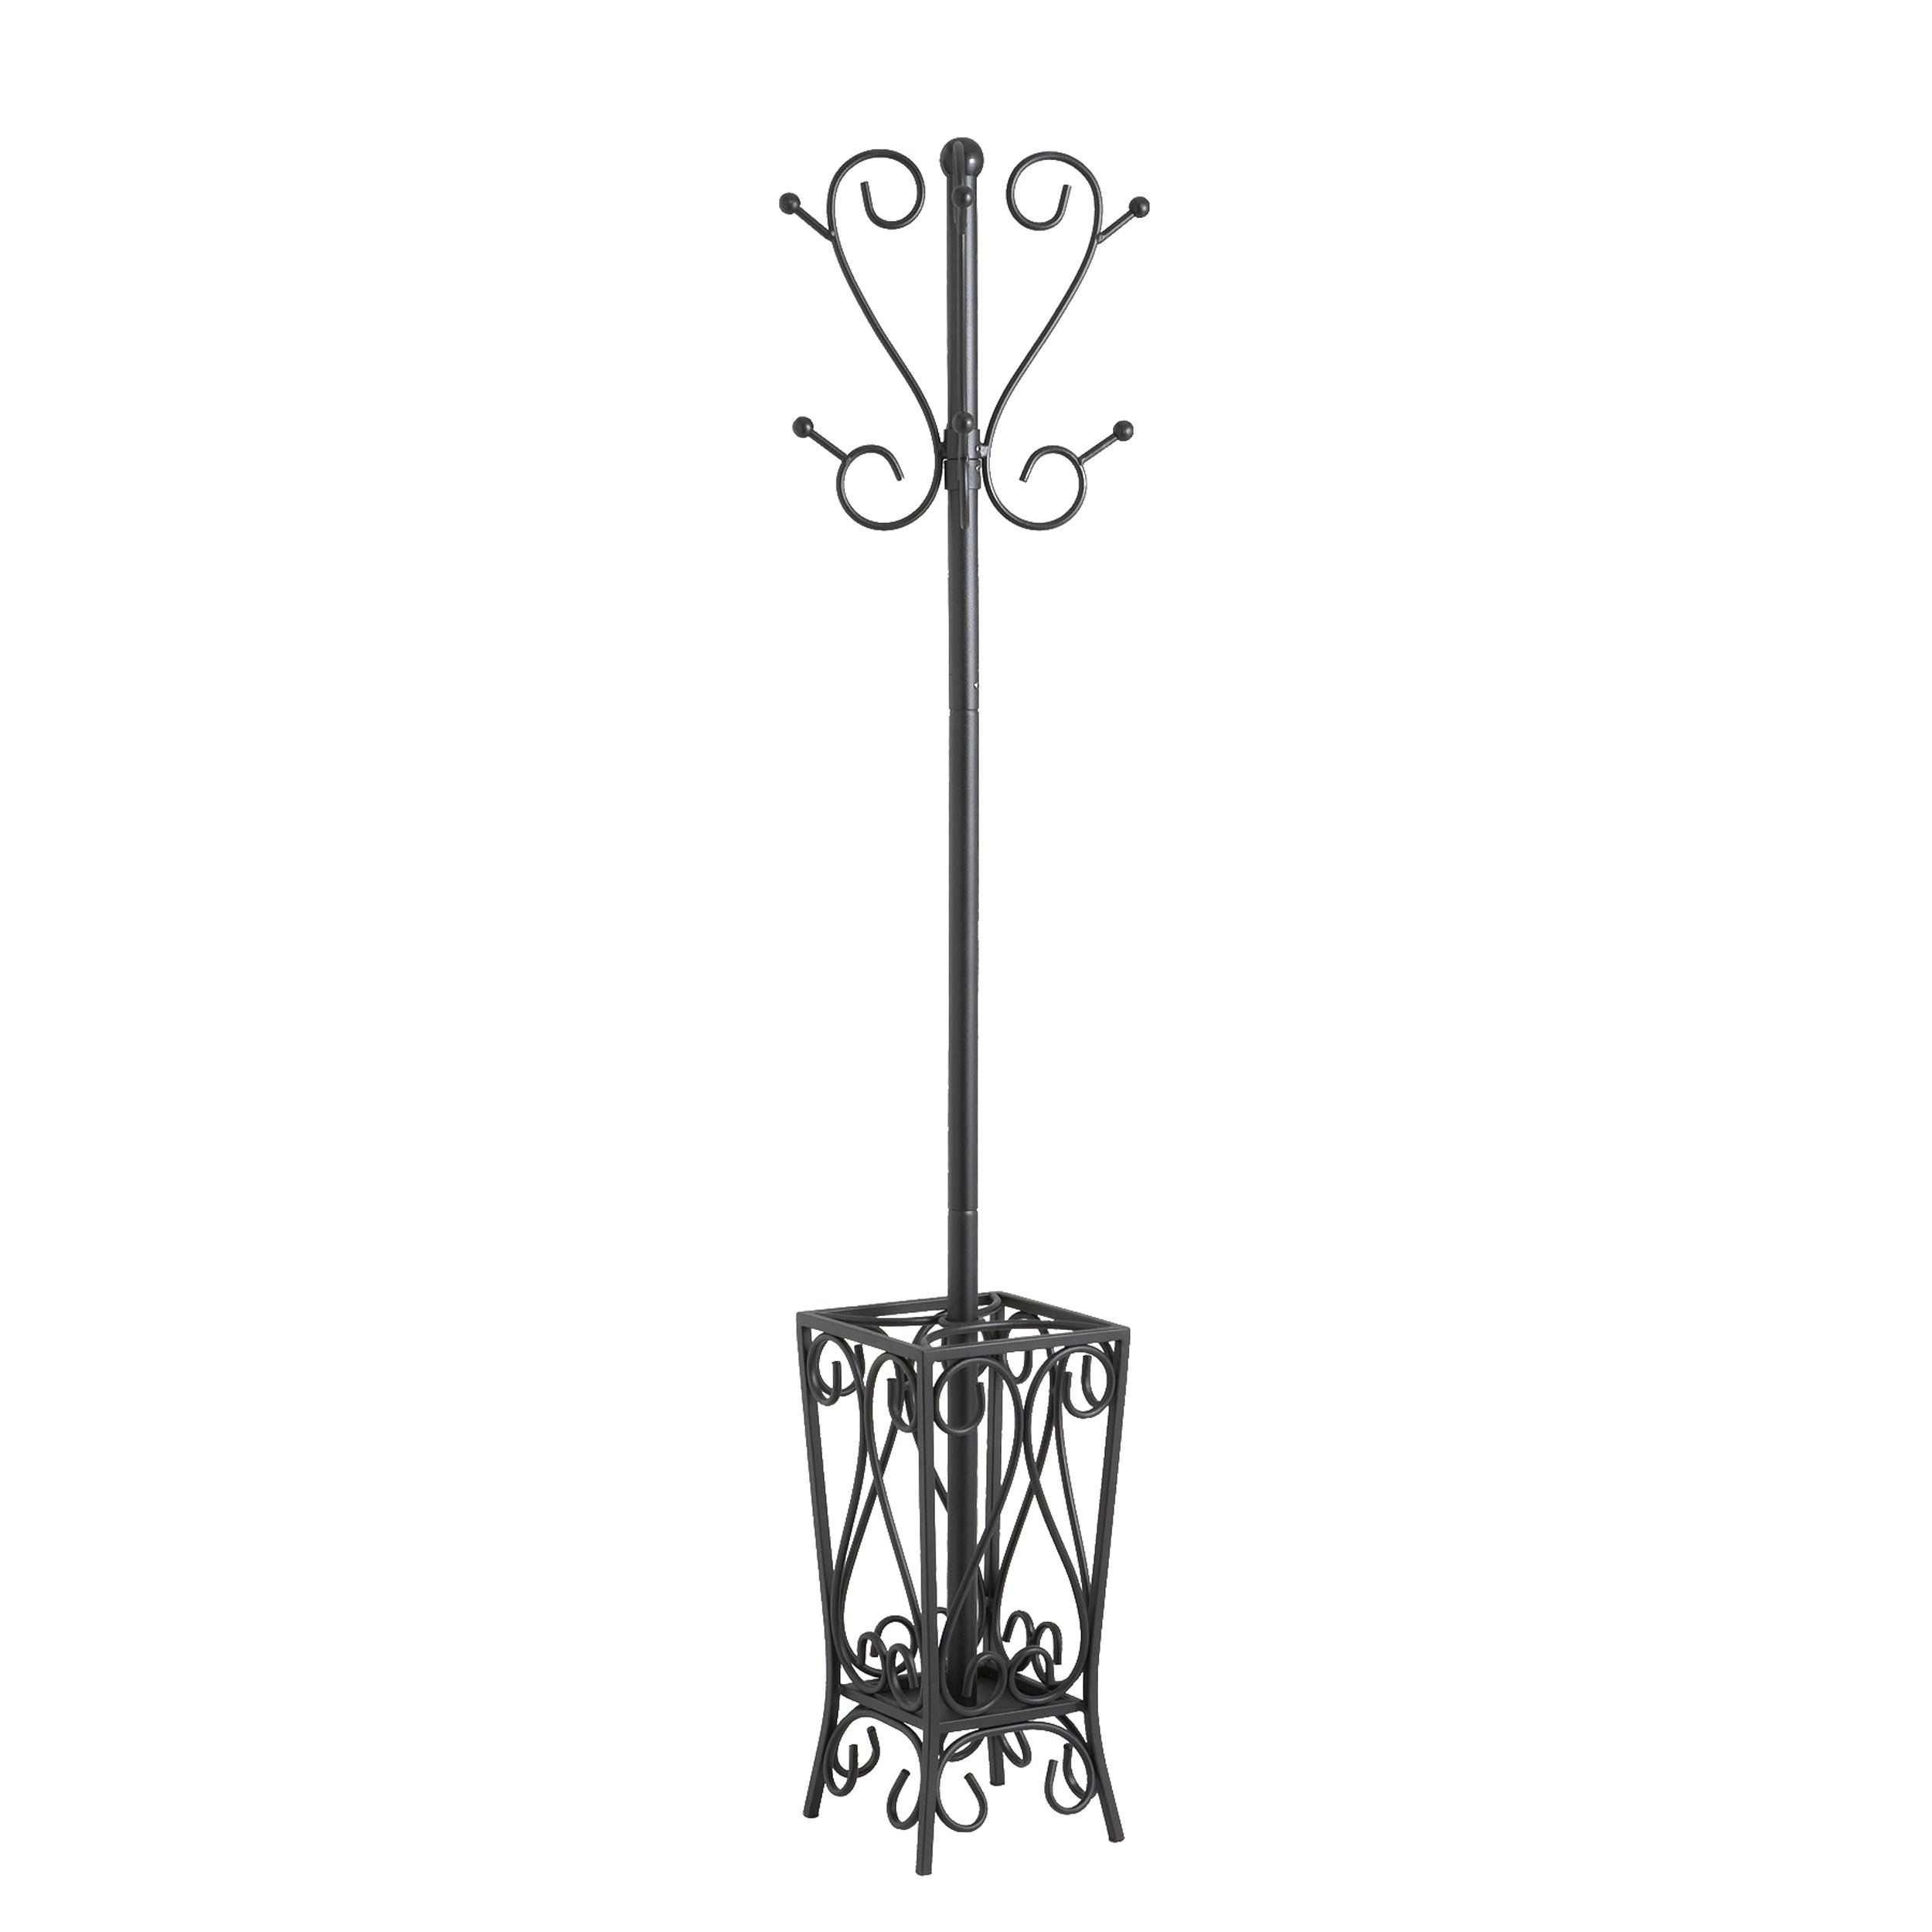 Southern Enterprises Metal Scrolled Coat Rack and Umbrella Stand 69''Tall in Black Finish